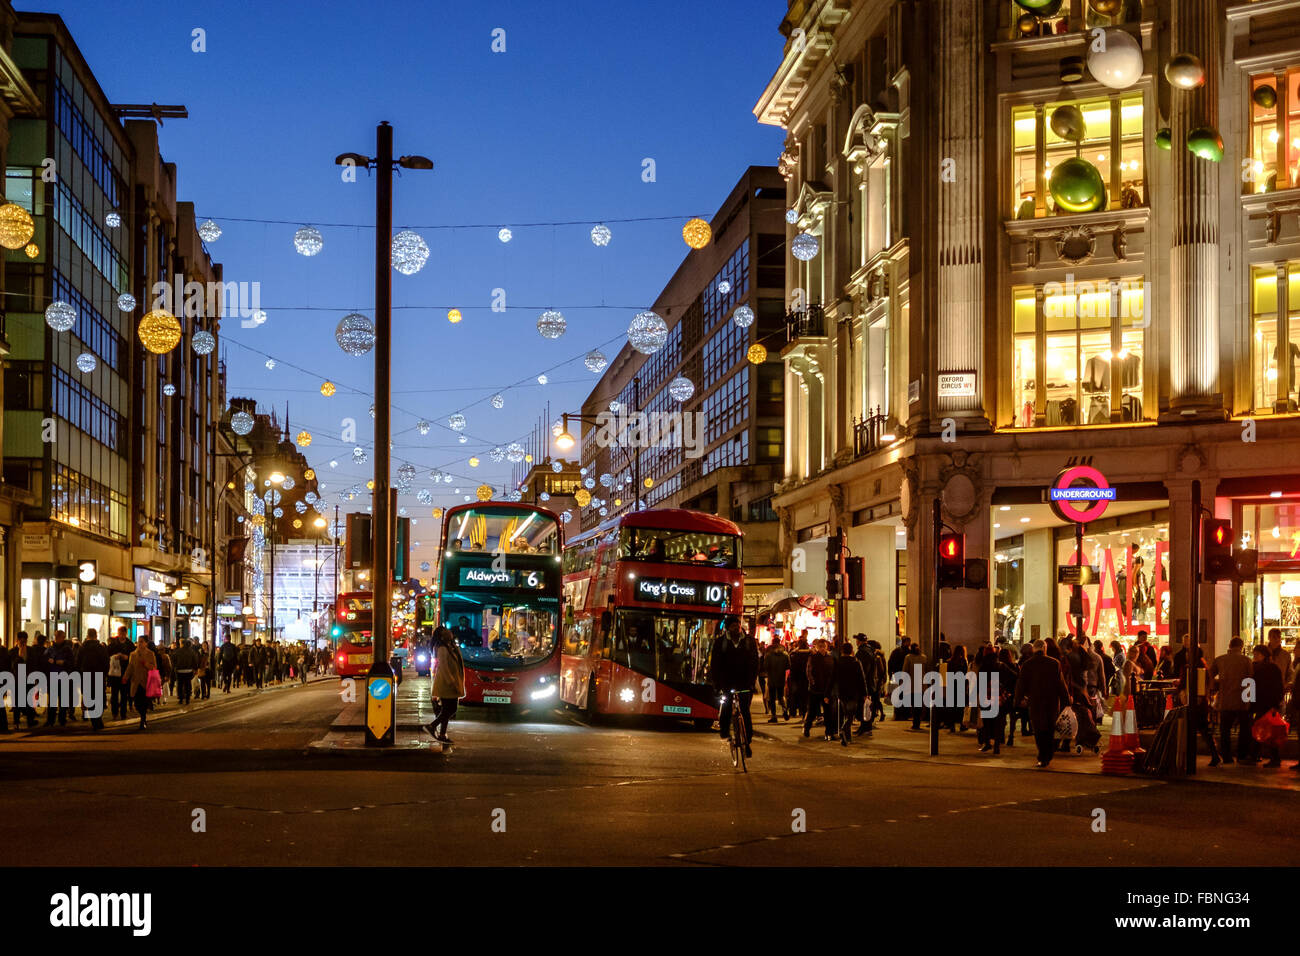 Oxford Circus on Christmas Eve in London, England. - Stock Image